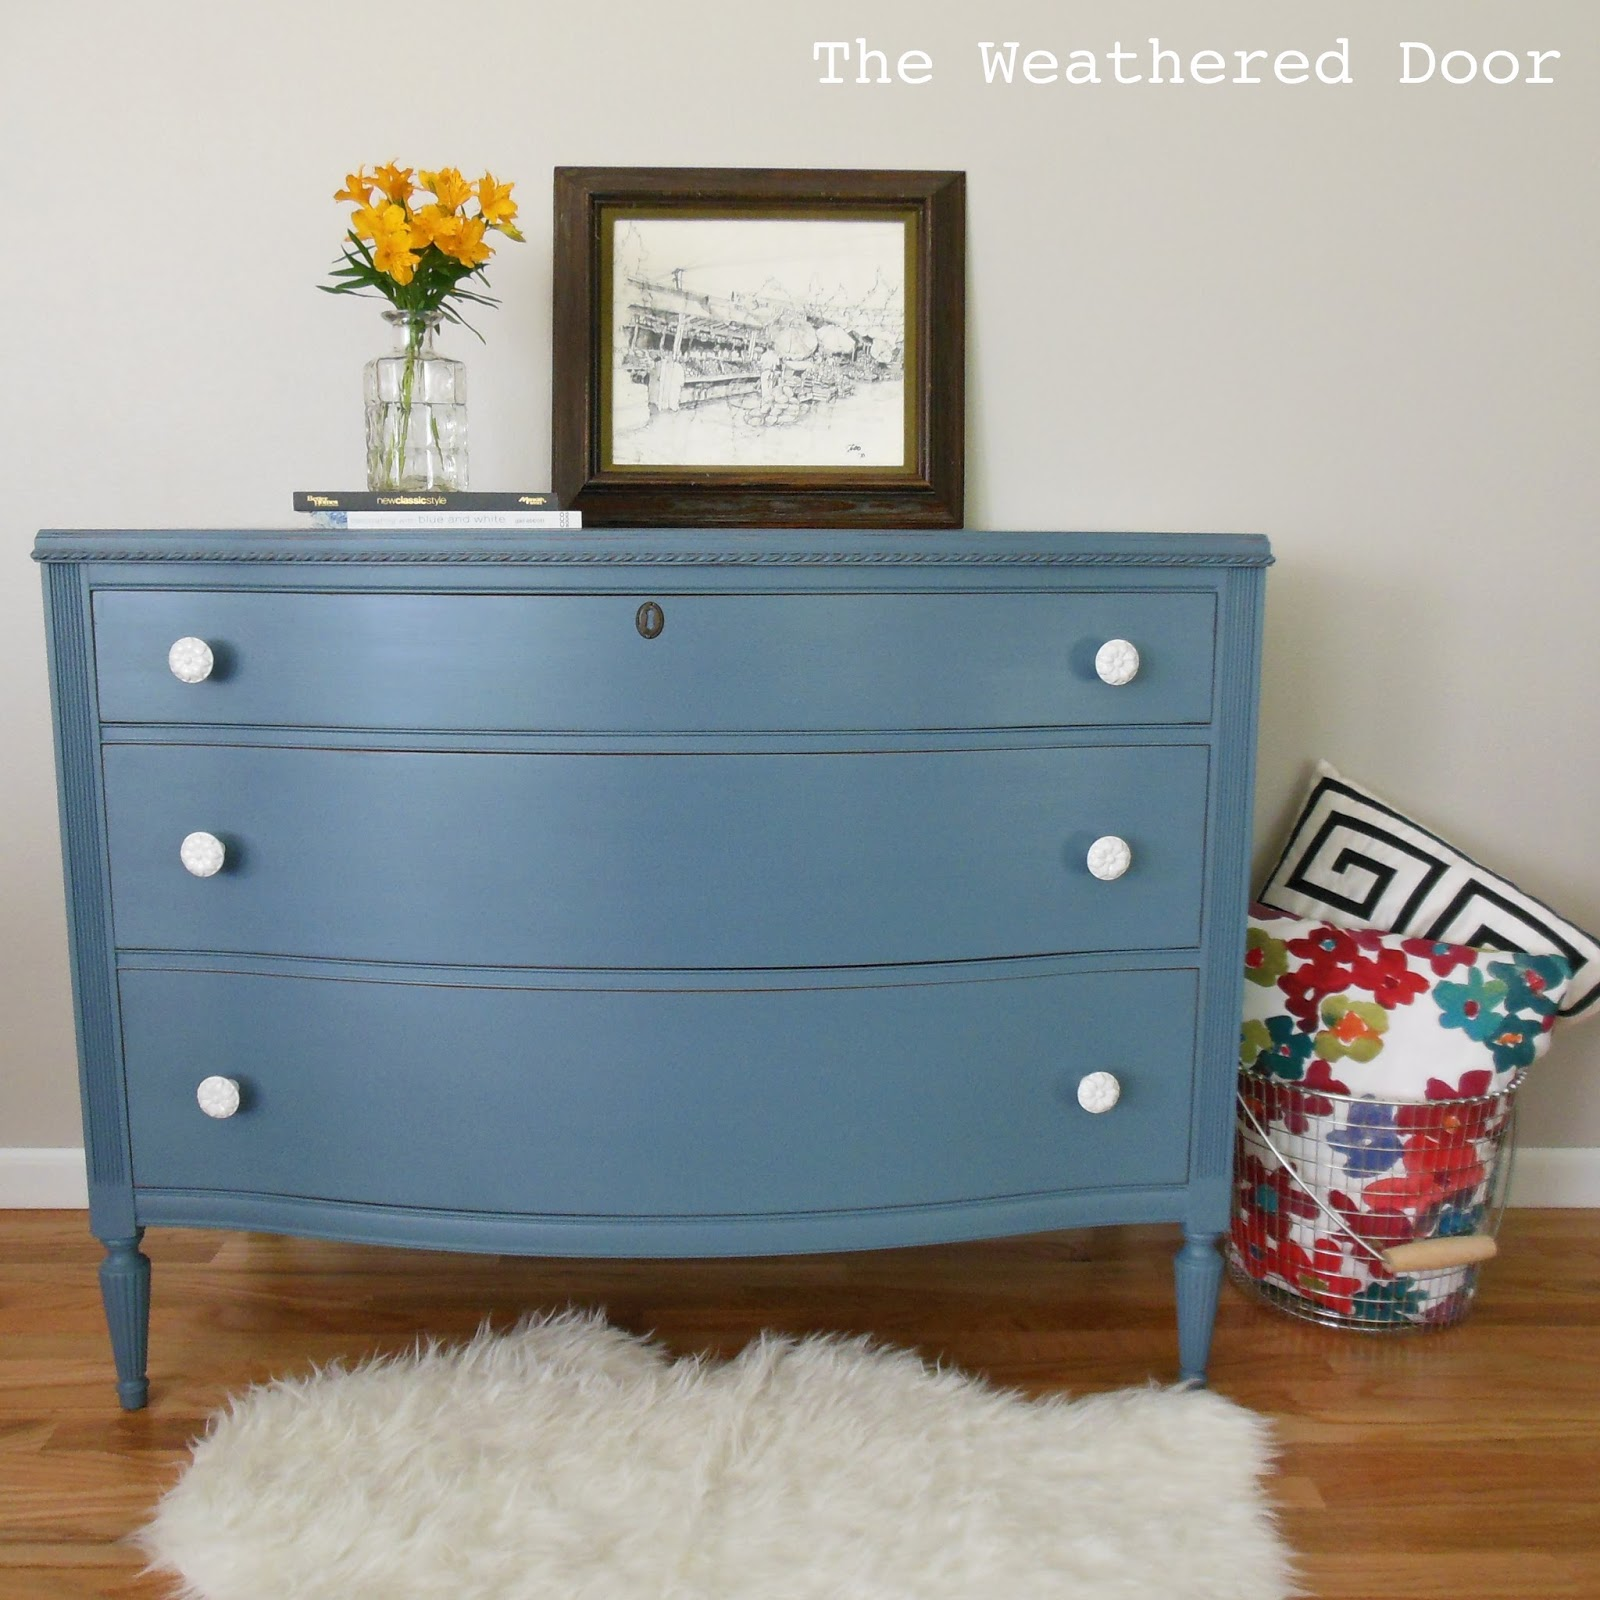 A smokey blue dresser with white knobs - The Weathered Door